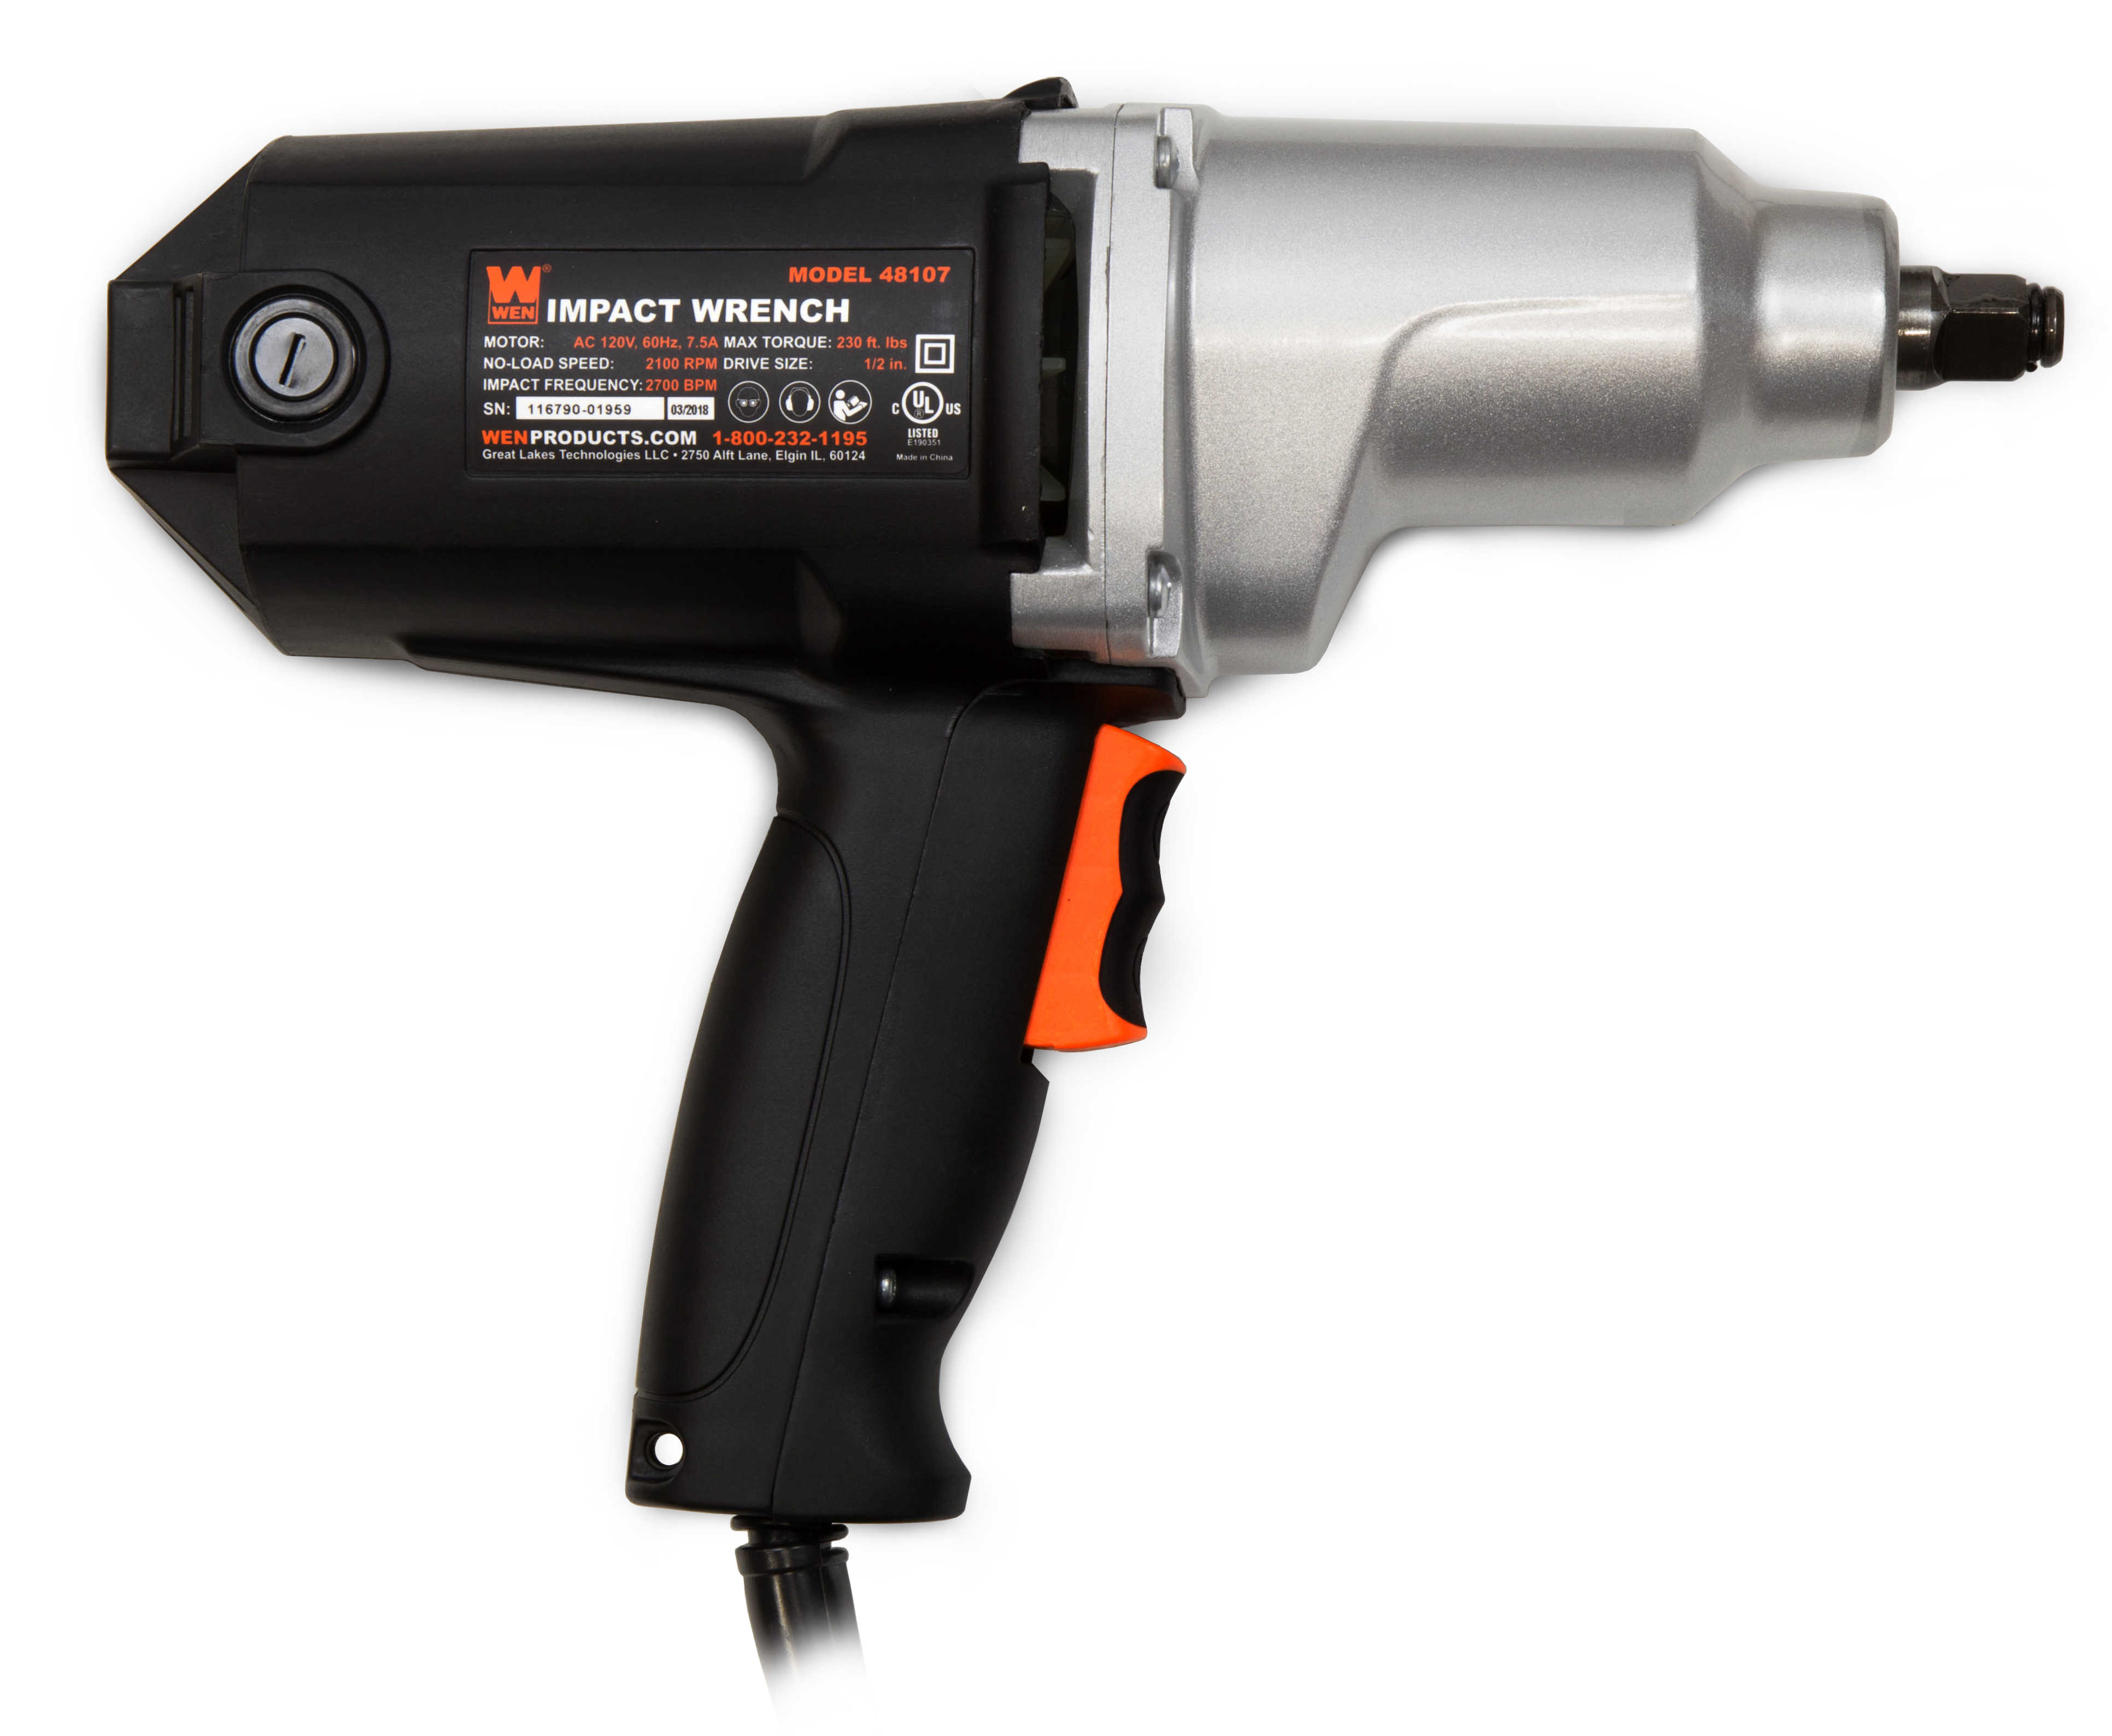 WEN 7.5-Amp 1/2-Inch Two-Direction Electric Impact Wrench